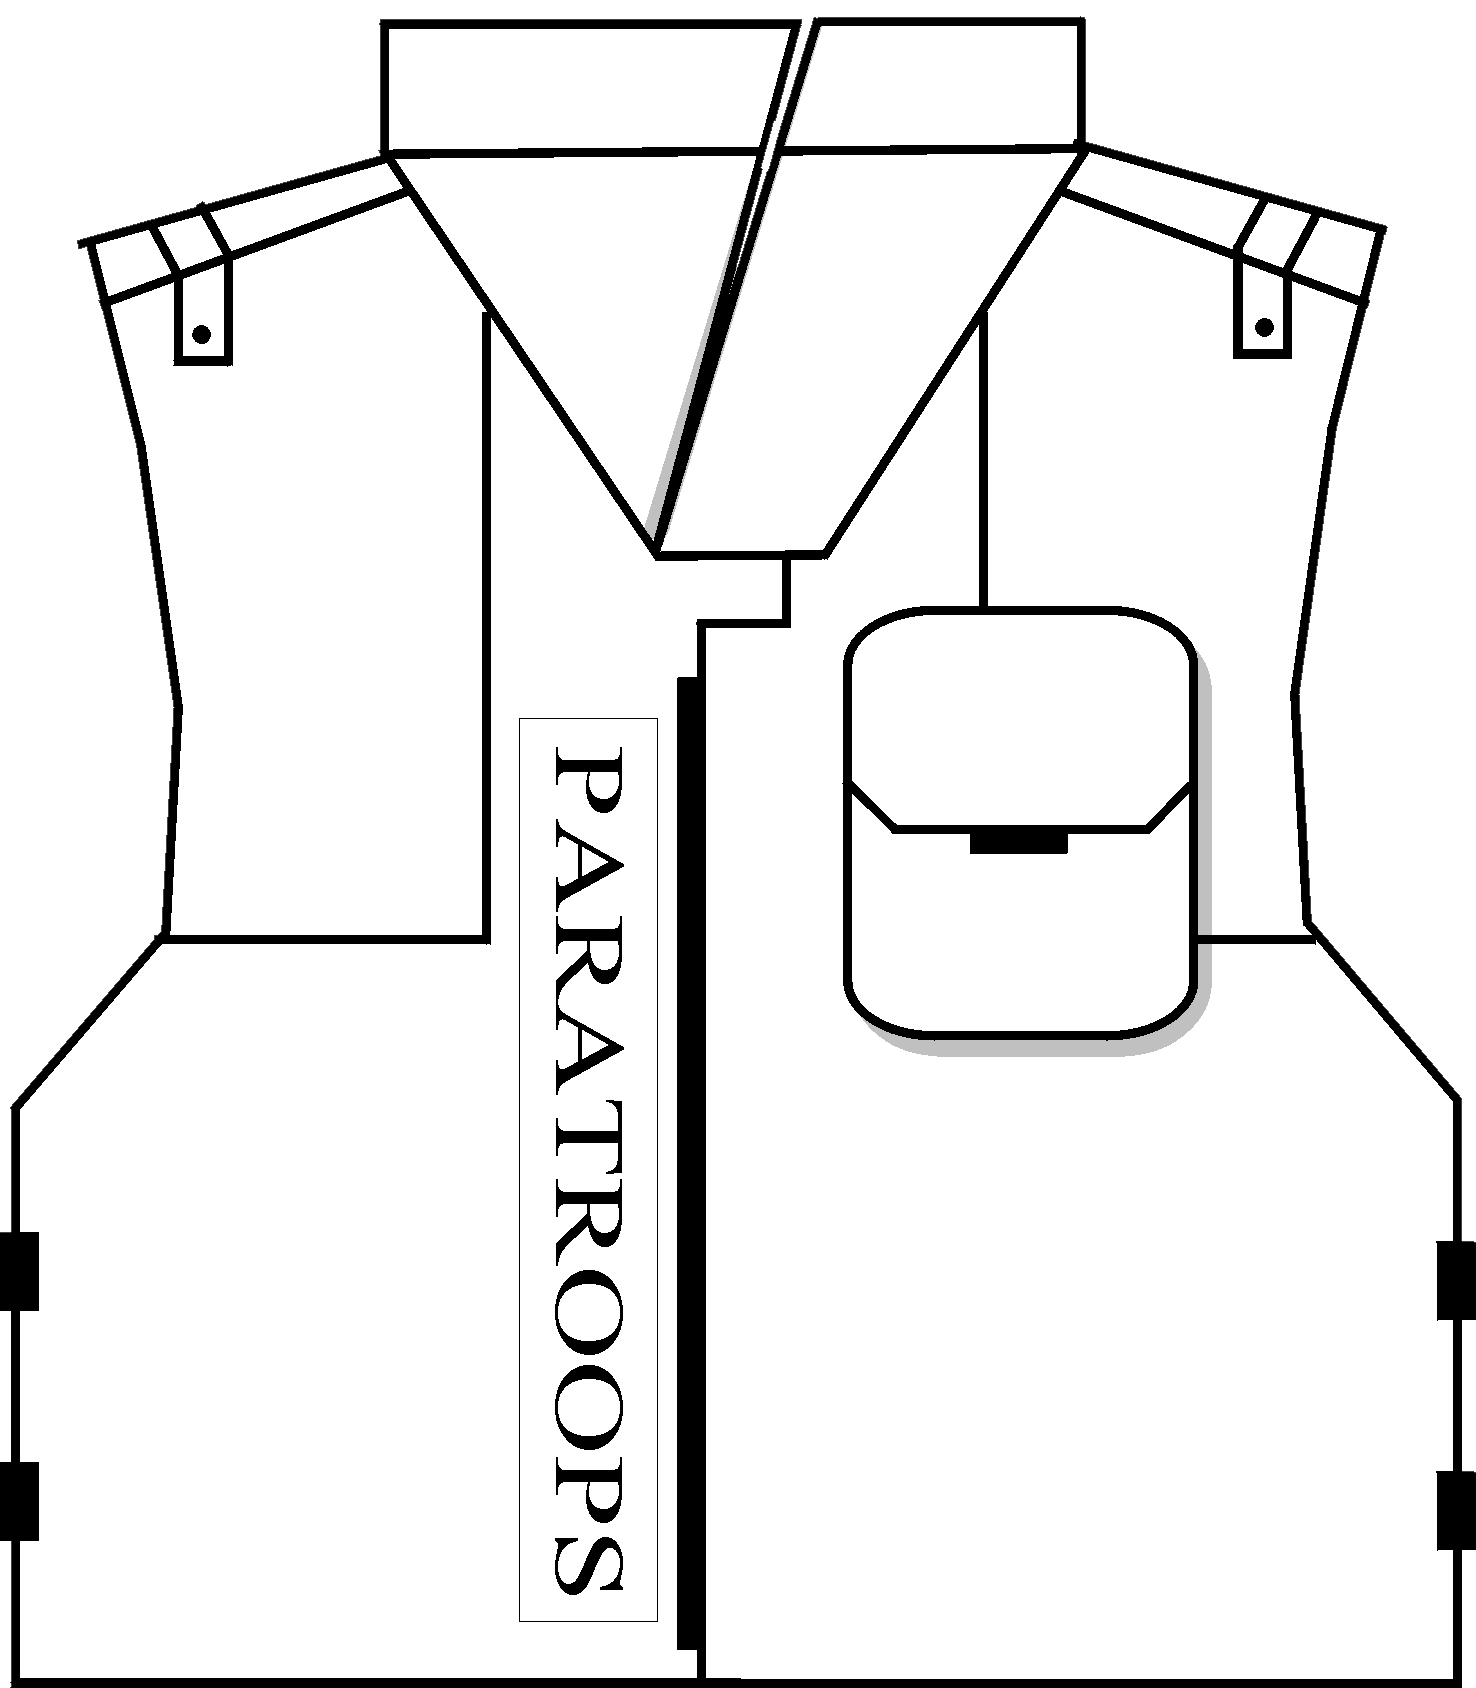 picture library stock Bullet vests technology drawings. Proof drawing.